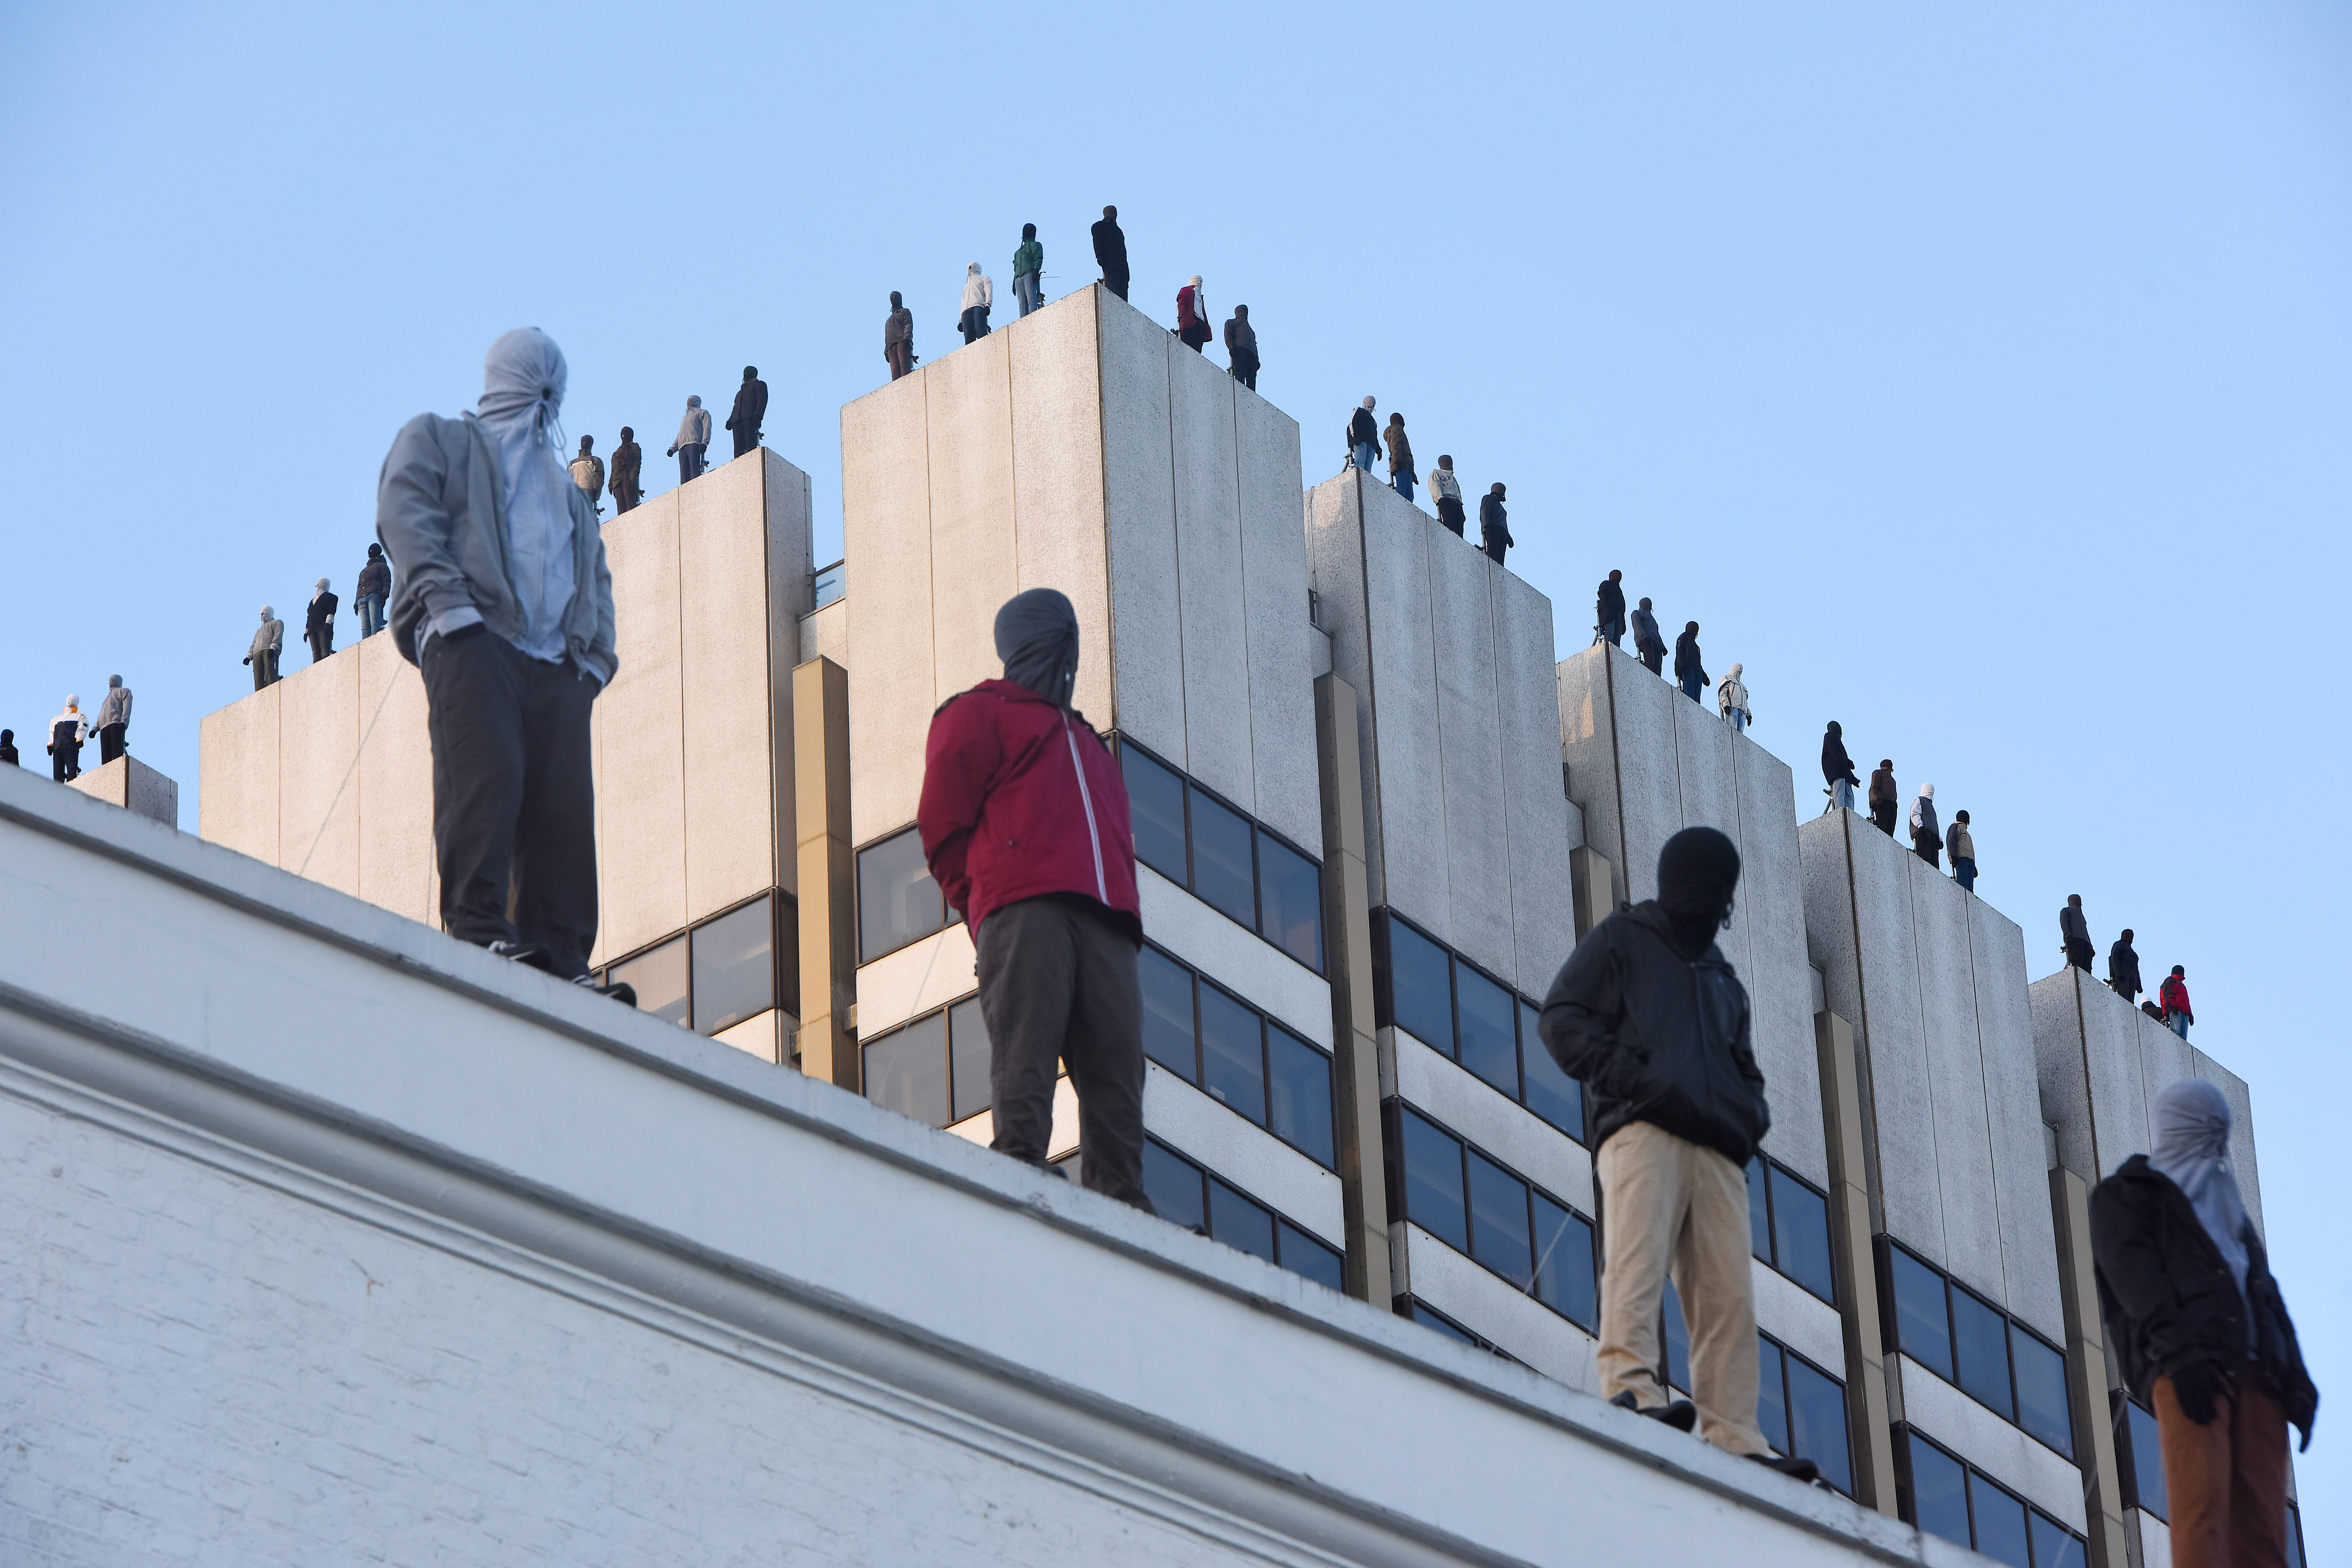 Why do statues of 84 men stand on the roof of a London skyscraper?